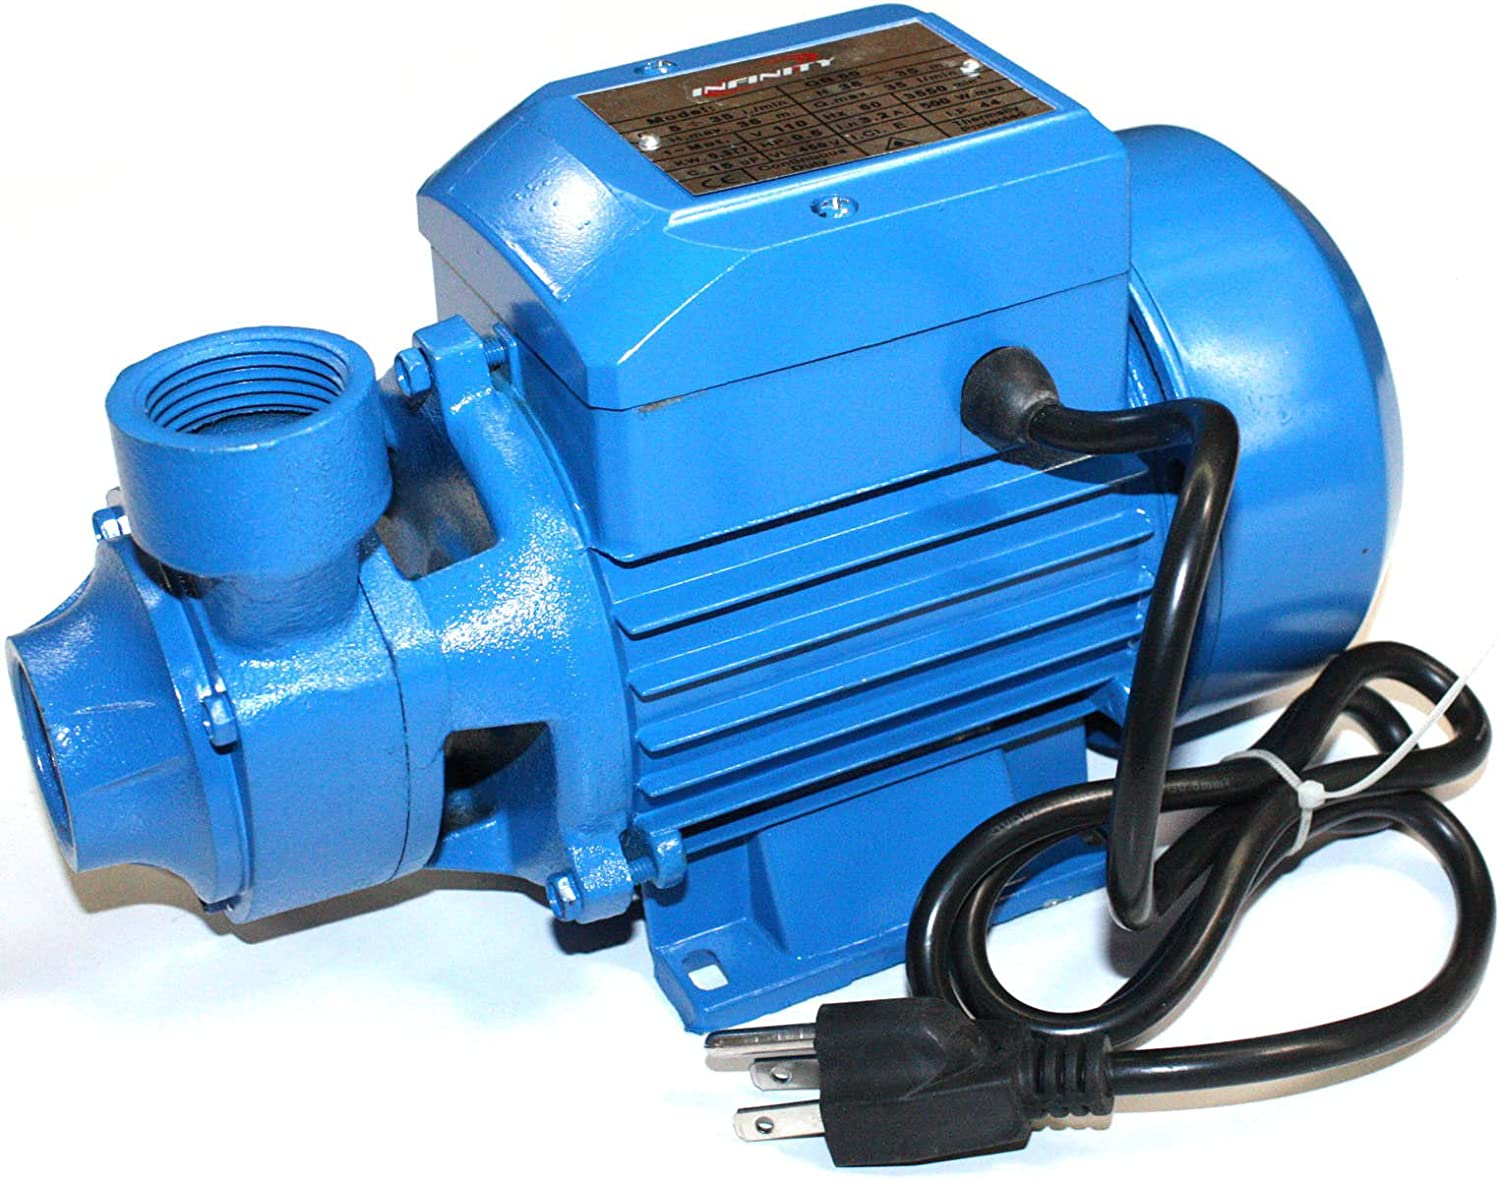 Amazon.com : 1/2HP ELECTRIC WATER PUMP INDUSTRIAL POND POOL FARM NEW Pumps Plumbing Home Tool : Patio, Lawn & Garden